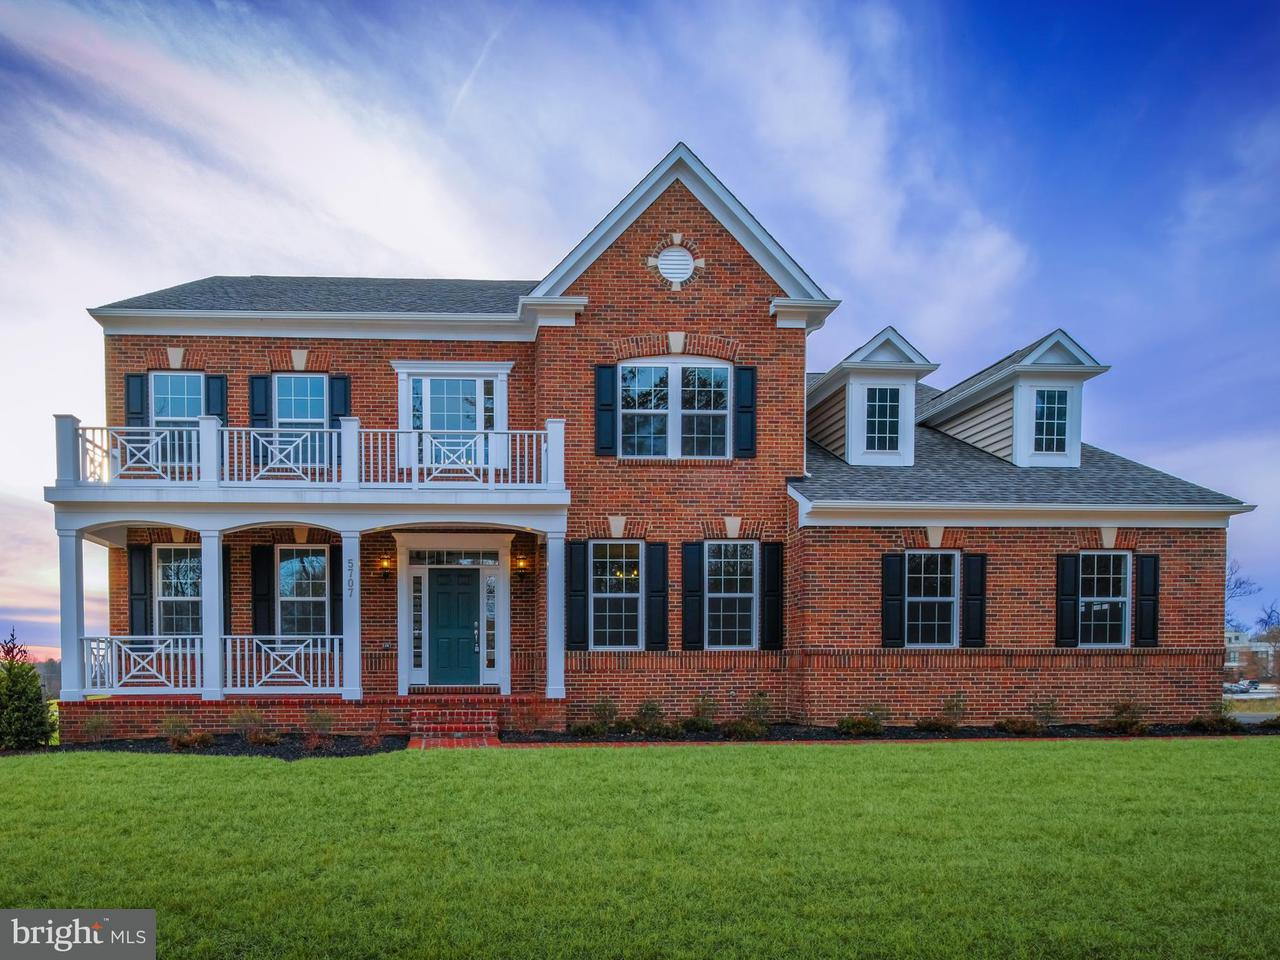 Single Family Home for Sale at 5707 Achille Lane 5707 Achille Lane Rockville, Maryland 20855 United States